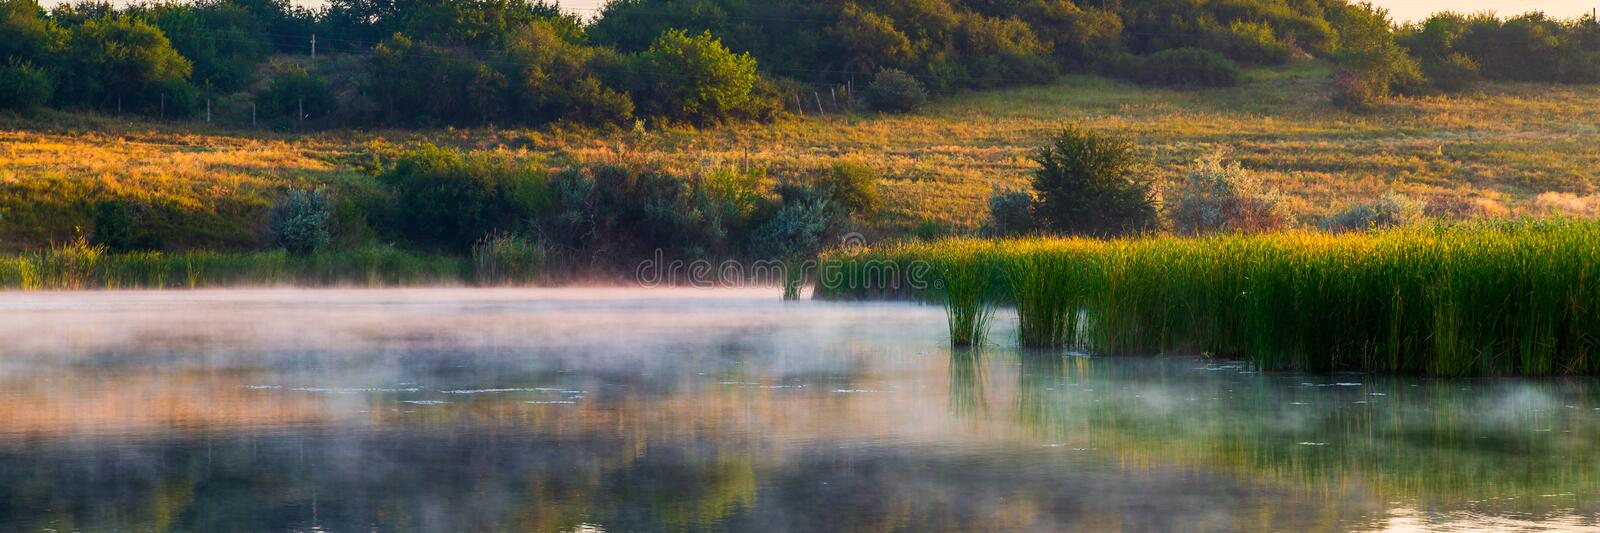 Landscape with misty morning on lake or pond royalty free stock image